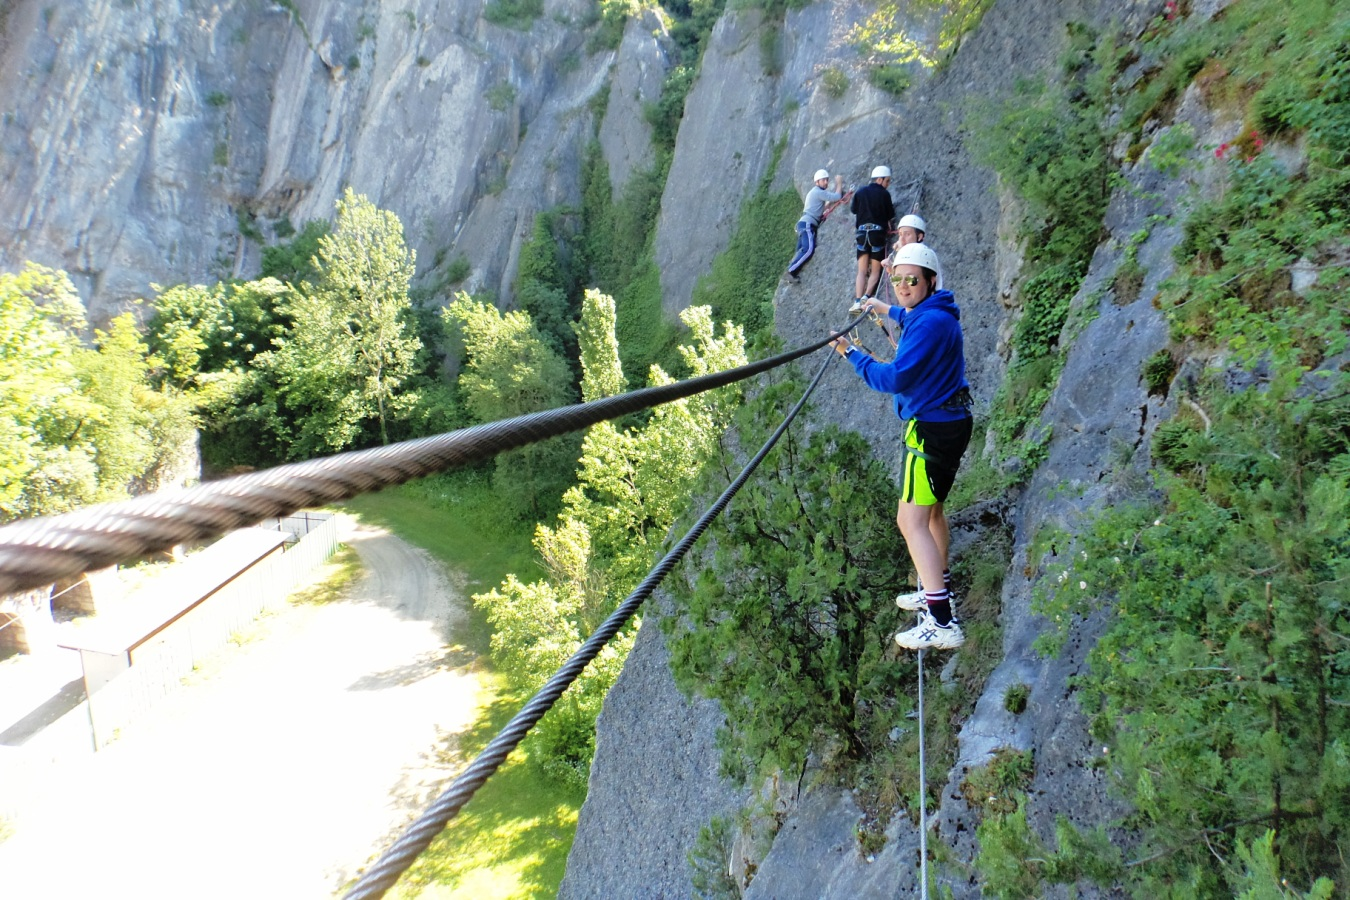 Calendrier sorties - Via ferrata Grenoble Bastille